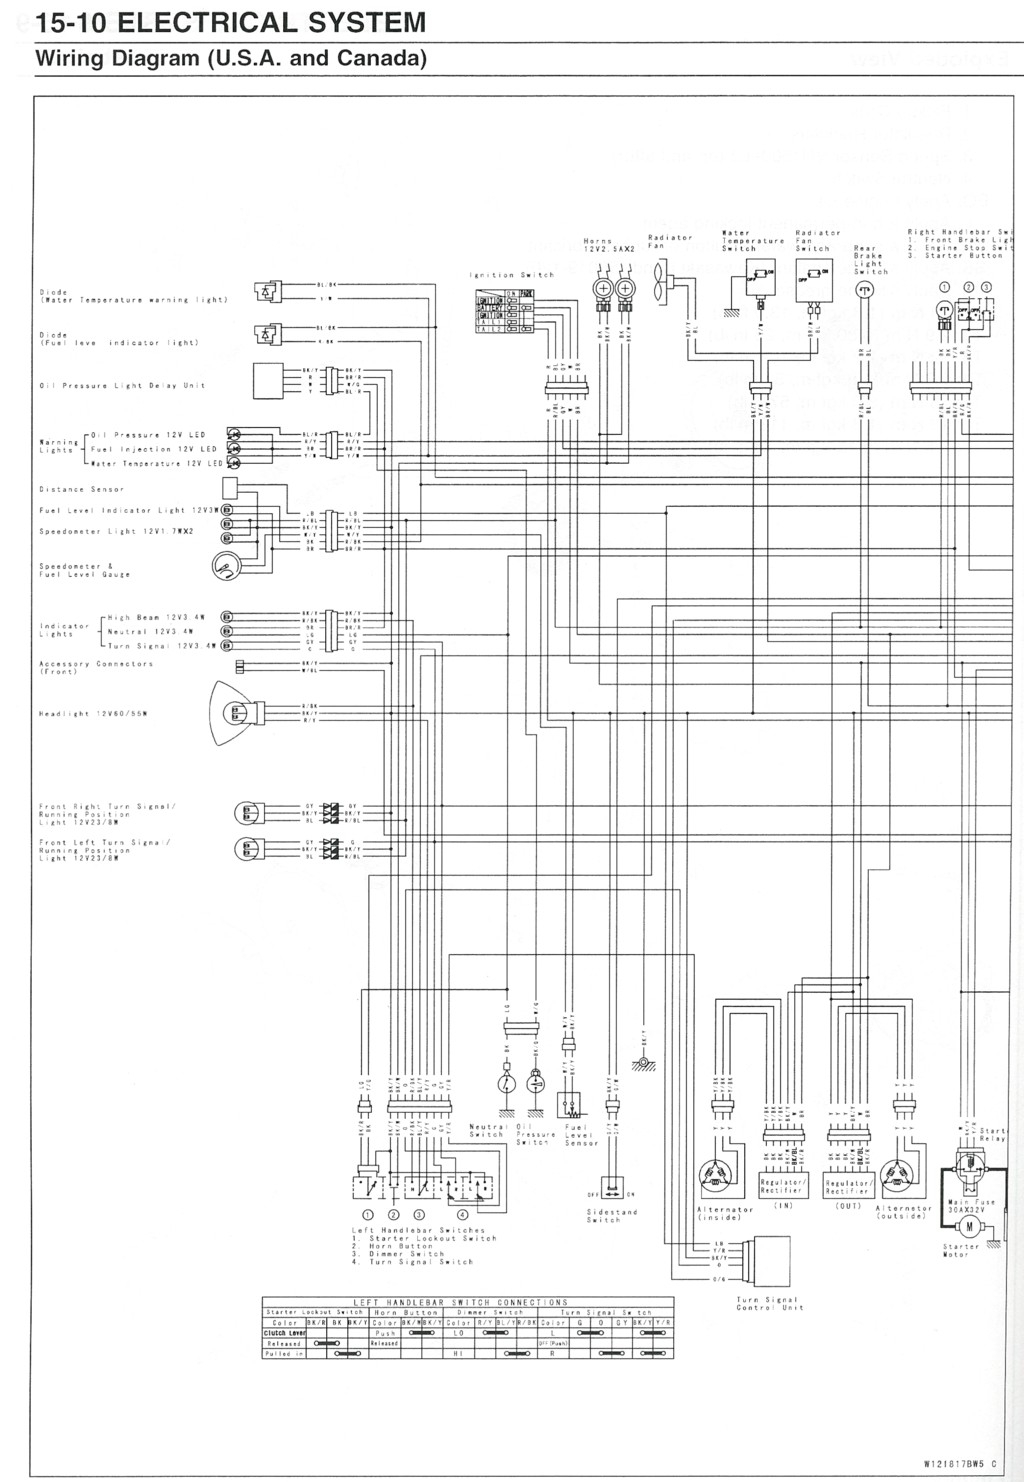 Wiring Blueprint For A 1992 Kawasaki Vulcan 1500 Library Gmc Engine Diagram Schematic Schemes Fuse Box Diagrams 1997